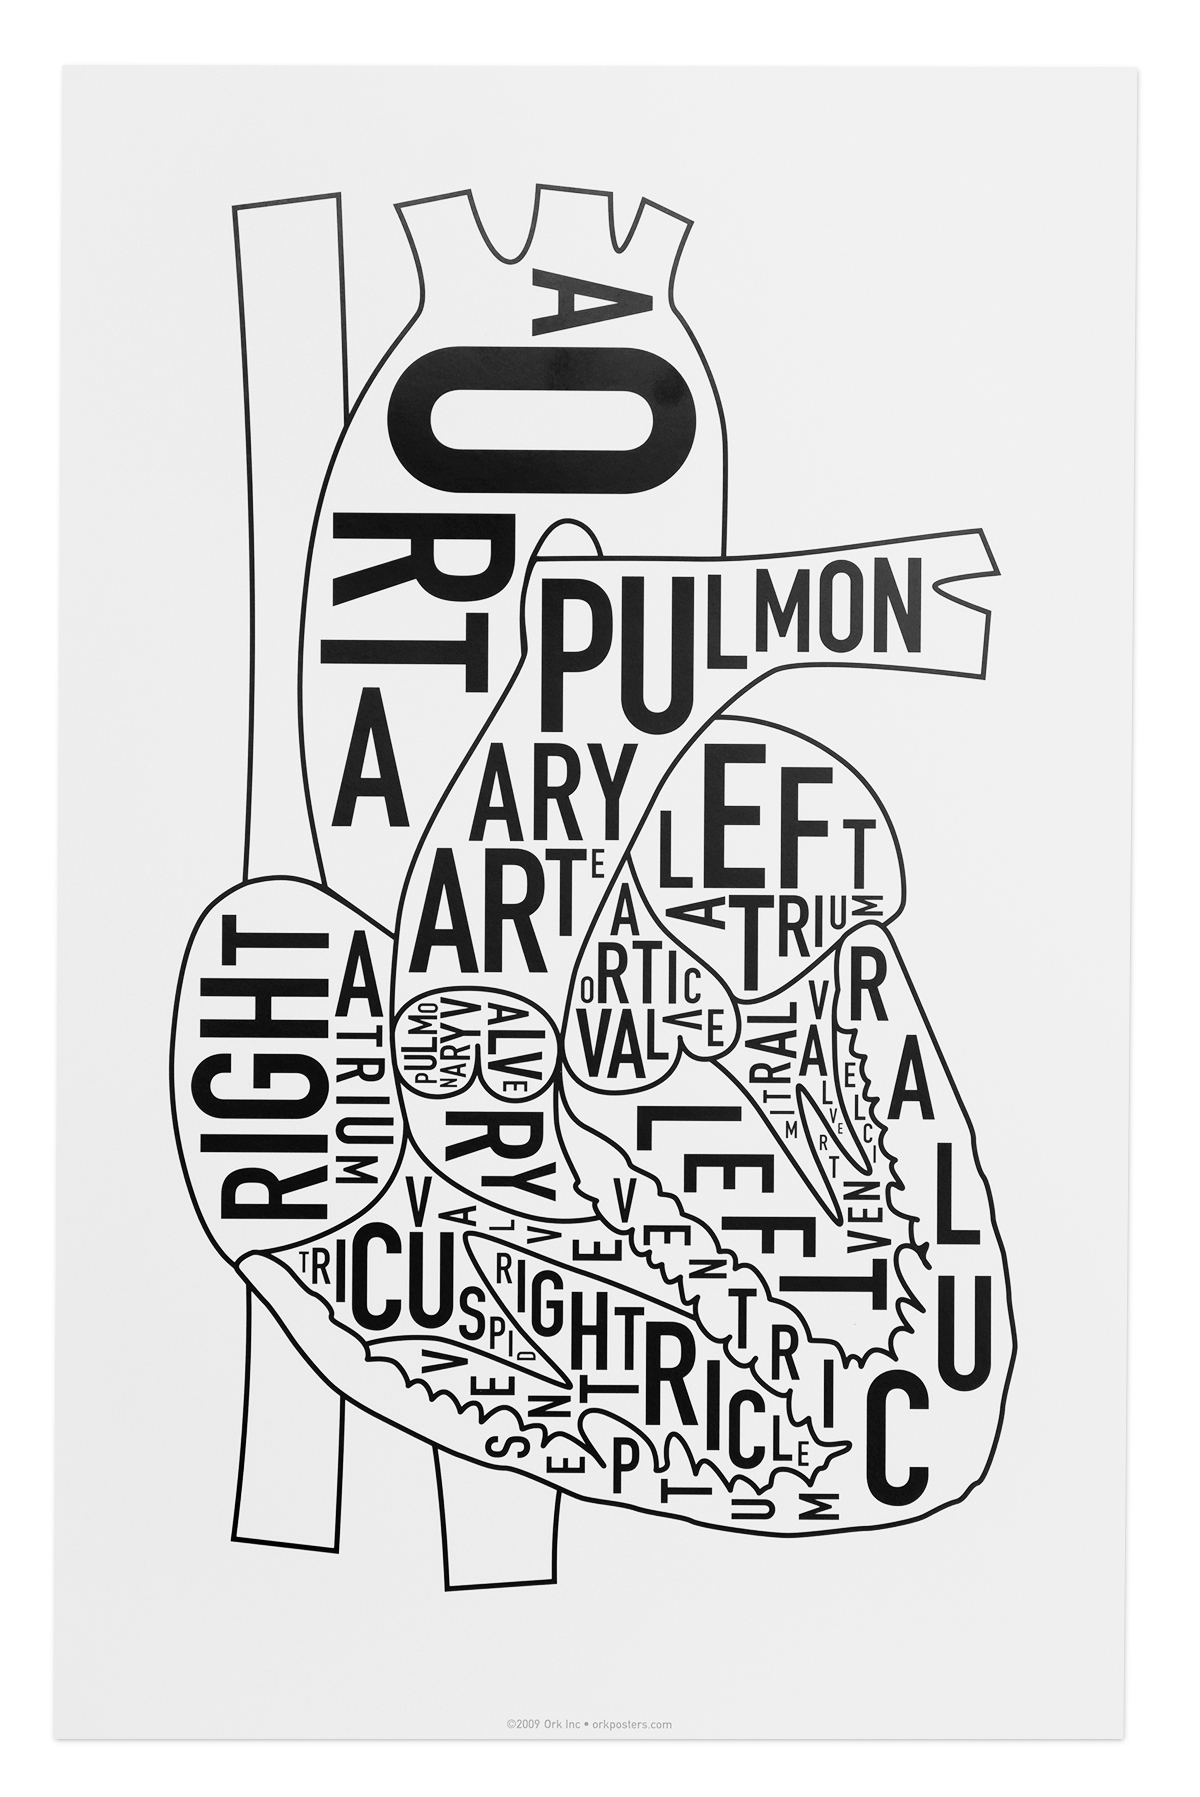 Heart Anatomy Typographic Art Prints - Human Heart Design by Ork Posters